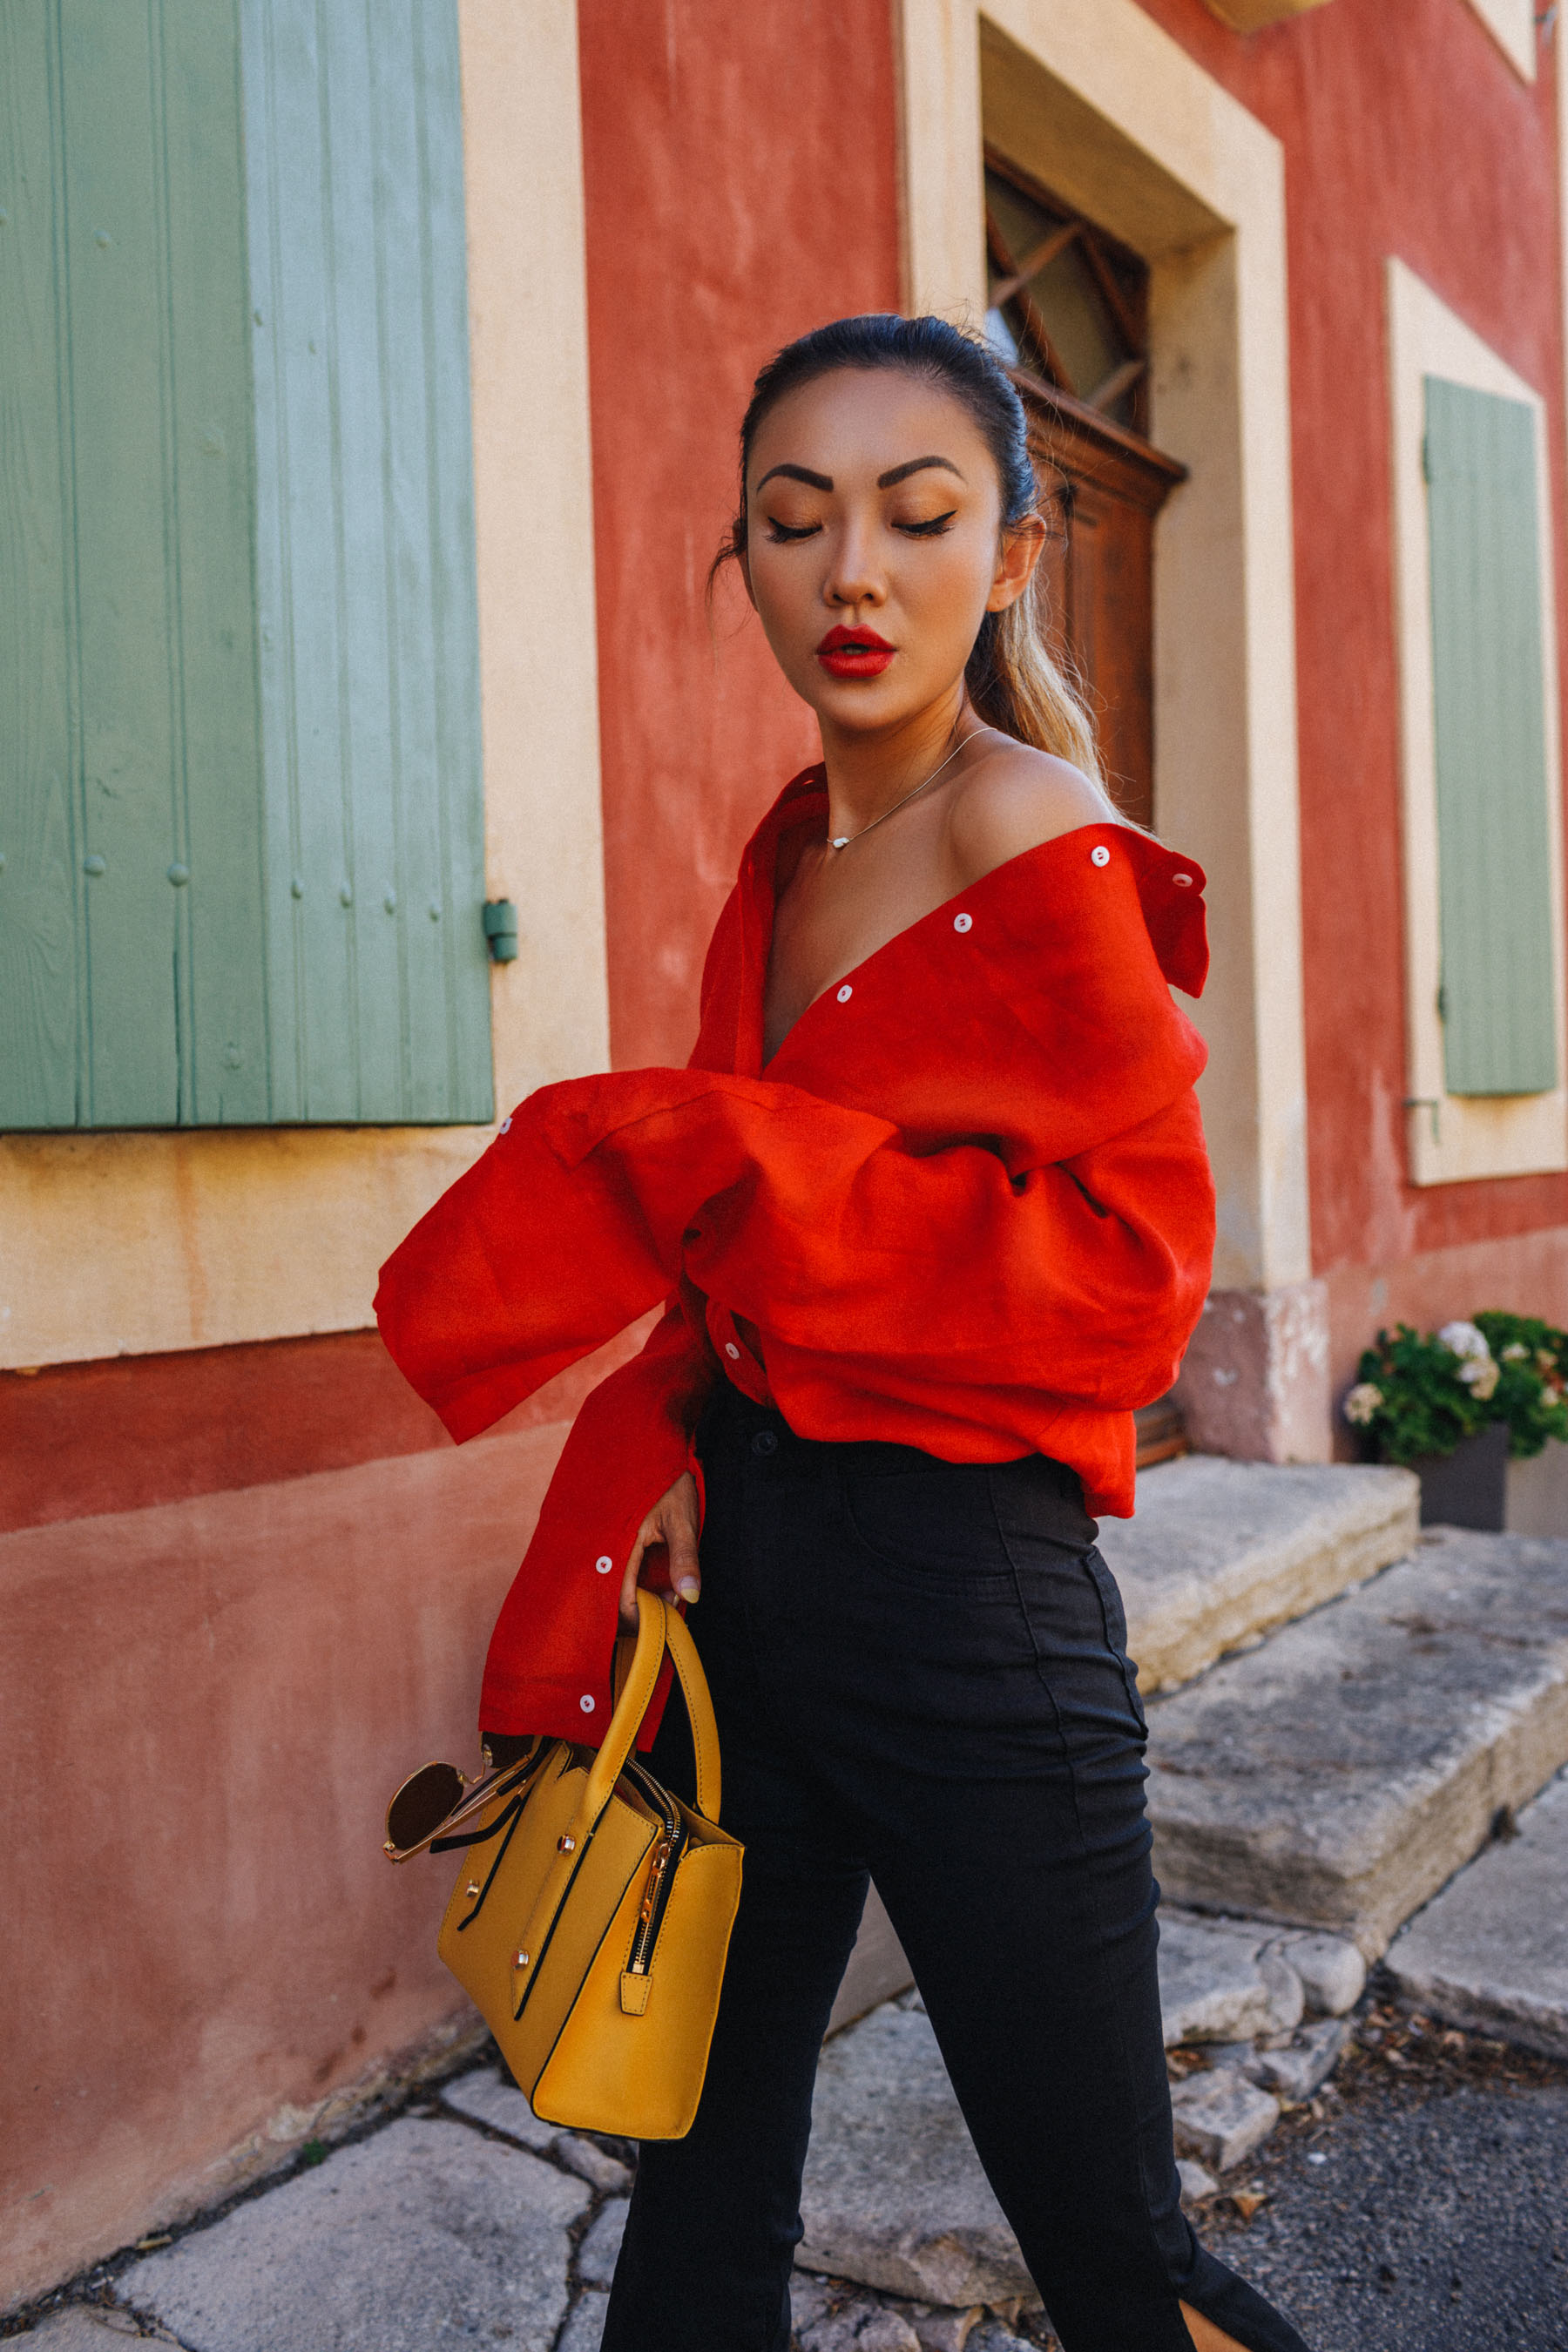 Guide to Wearing Color For Spring - cherry tomato, Bold Red Vintage-Inspired Trend // NotJessFashion.com